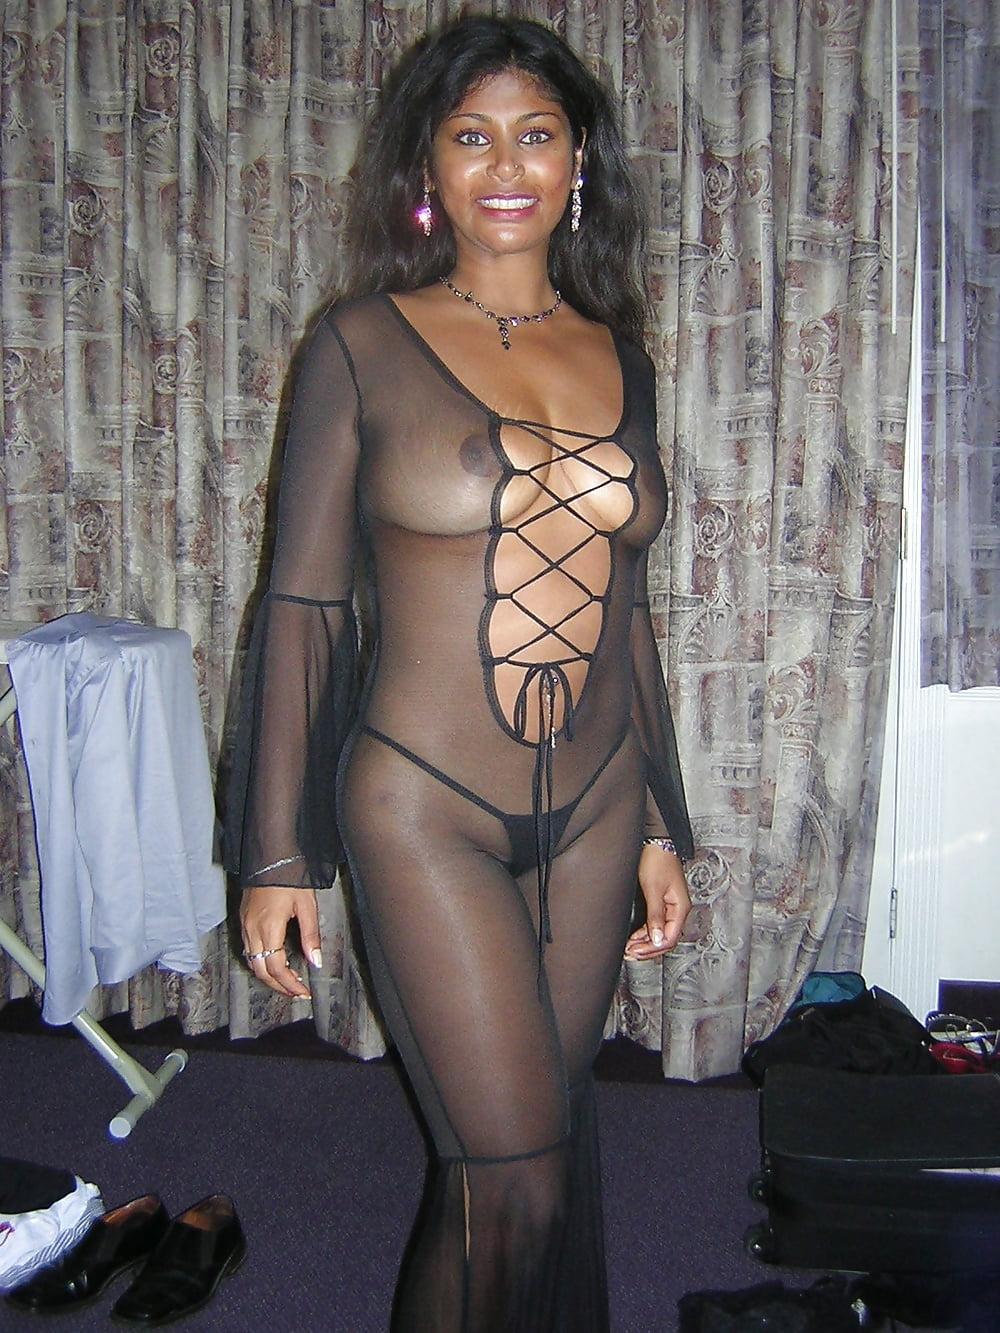 indian-sissy-nude